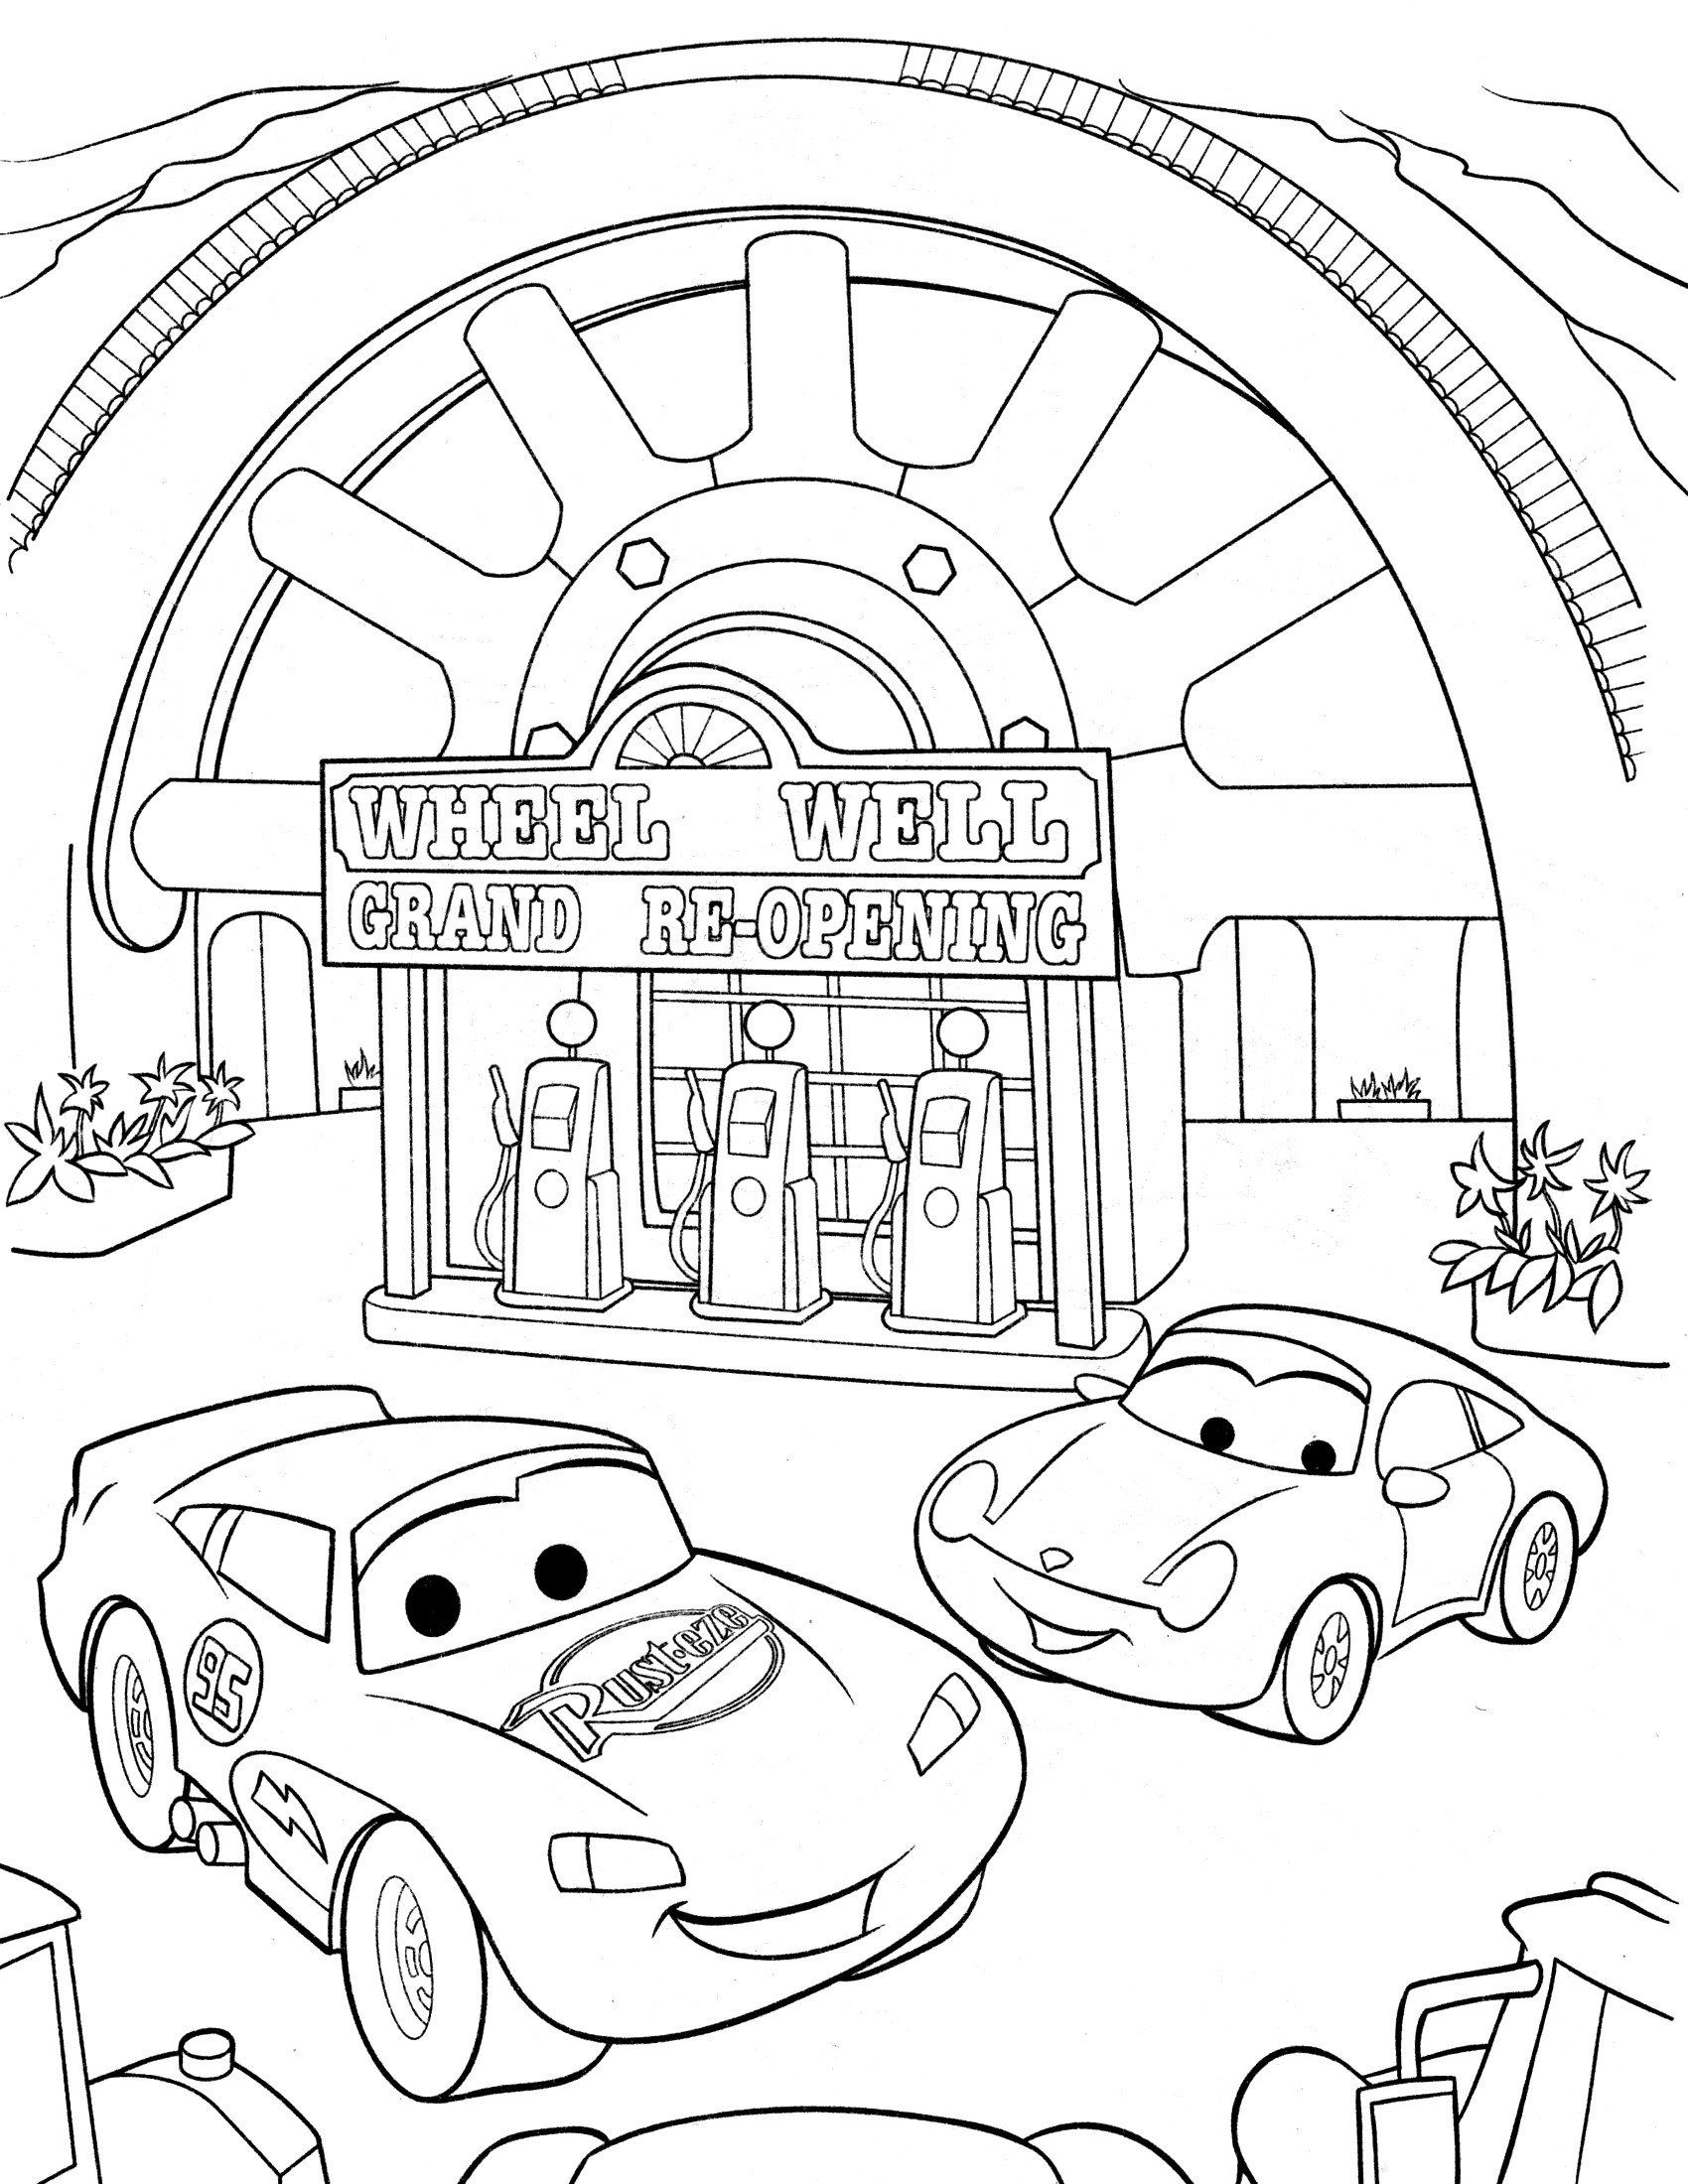 Cars The Movie Coloring Pages Disney Cars Coloring Pages Getcoloringpages Race Car Coloring Pages Cars Coloring Pages Cartoon Coloring Pages